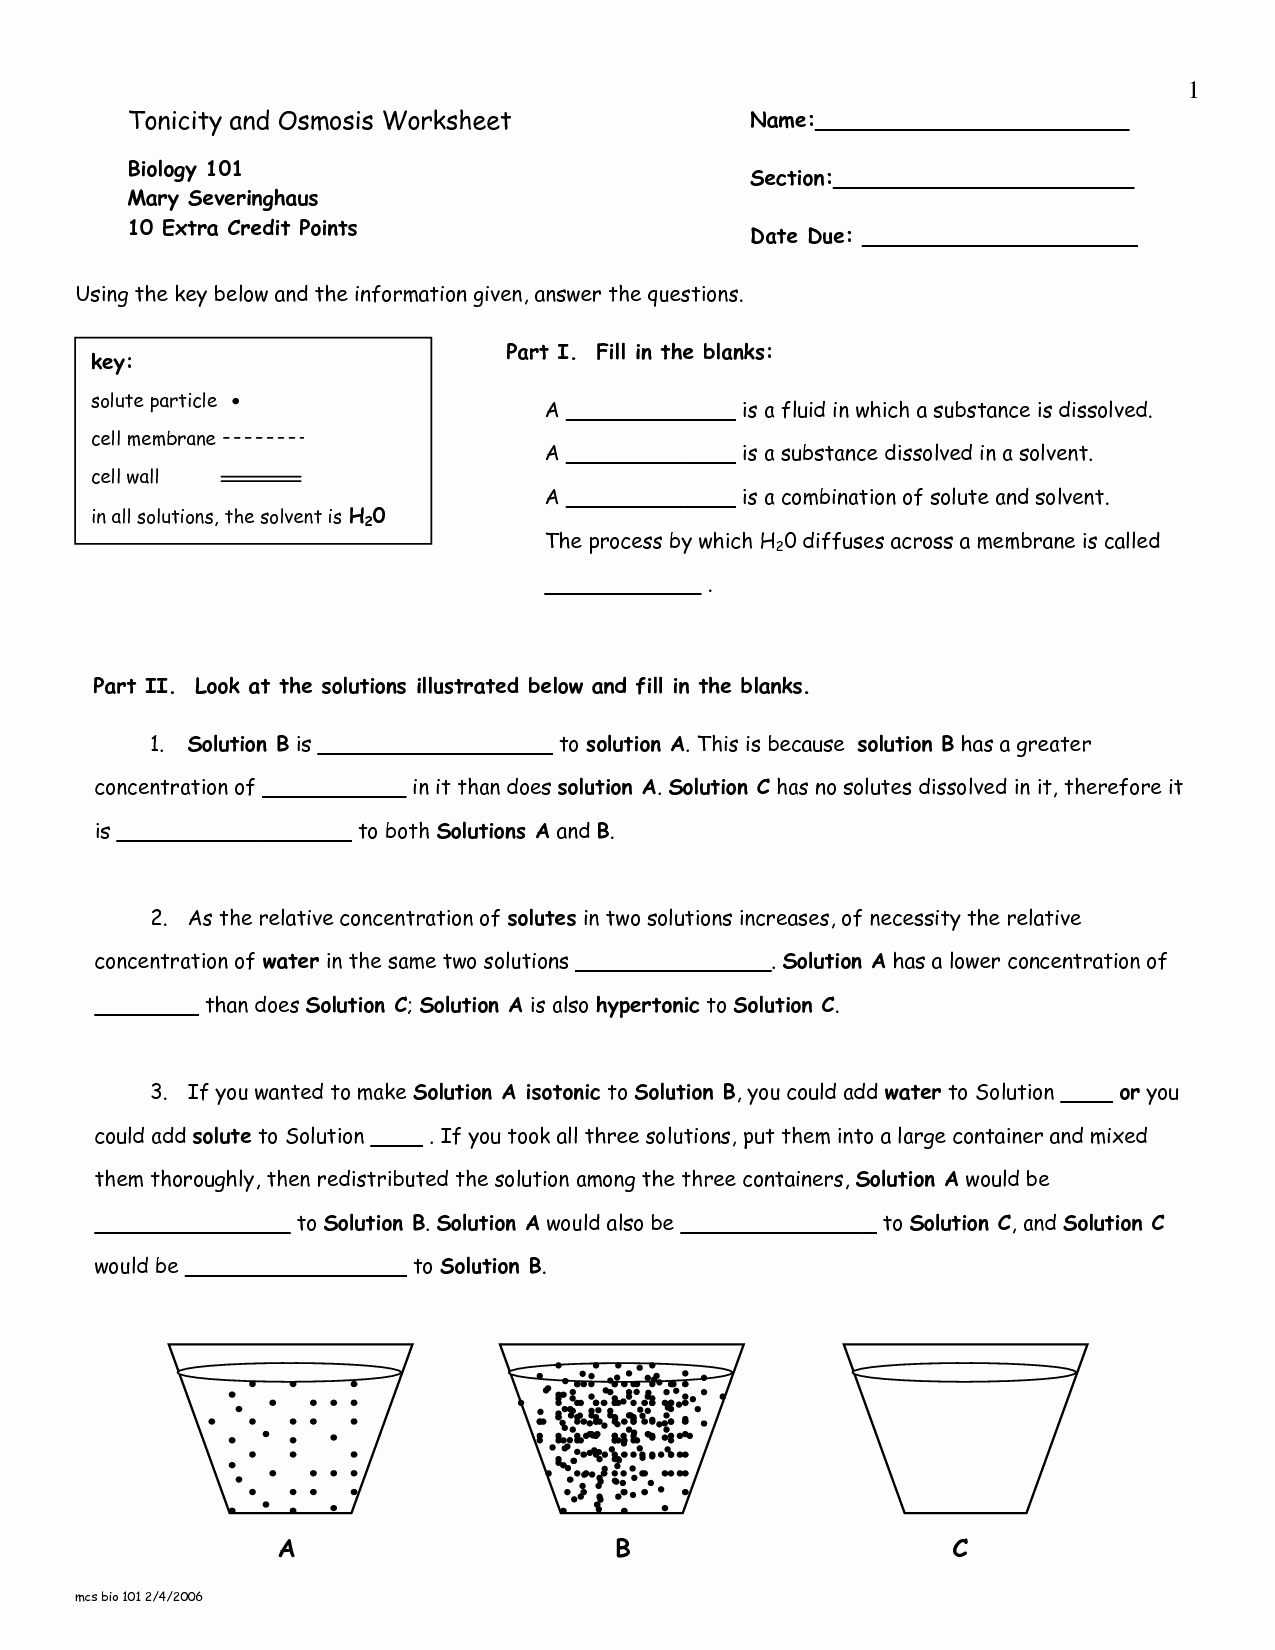 Diffusion and Osmosis Worksheet Answers Best Of Osmosis and Diffusion Worksheet